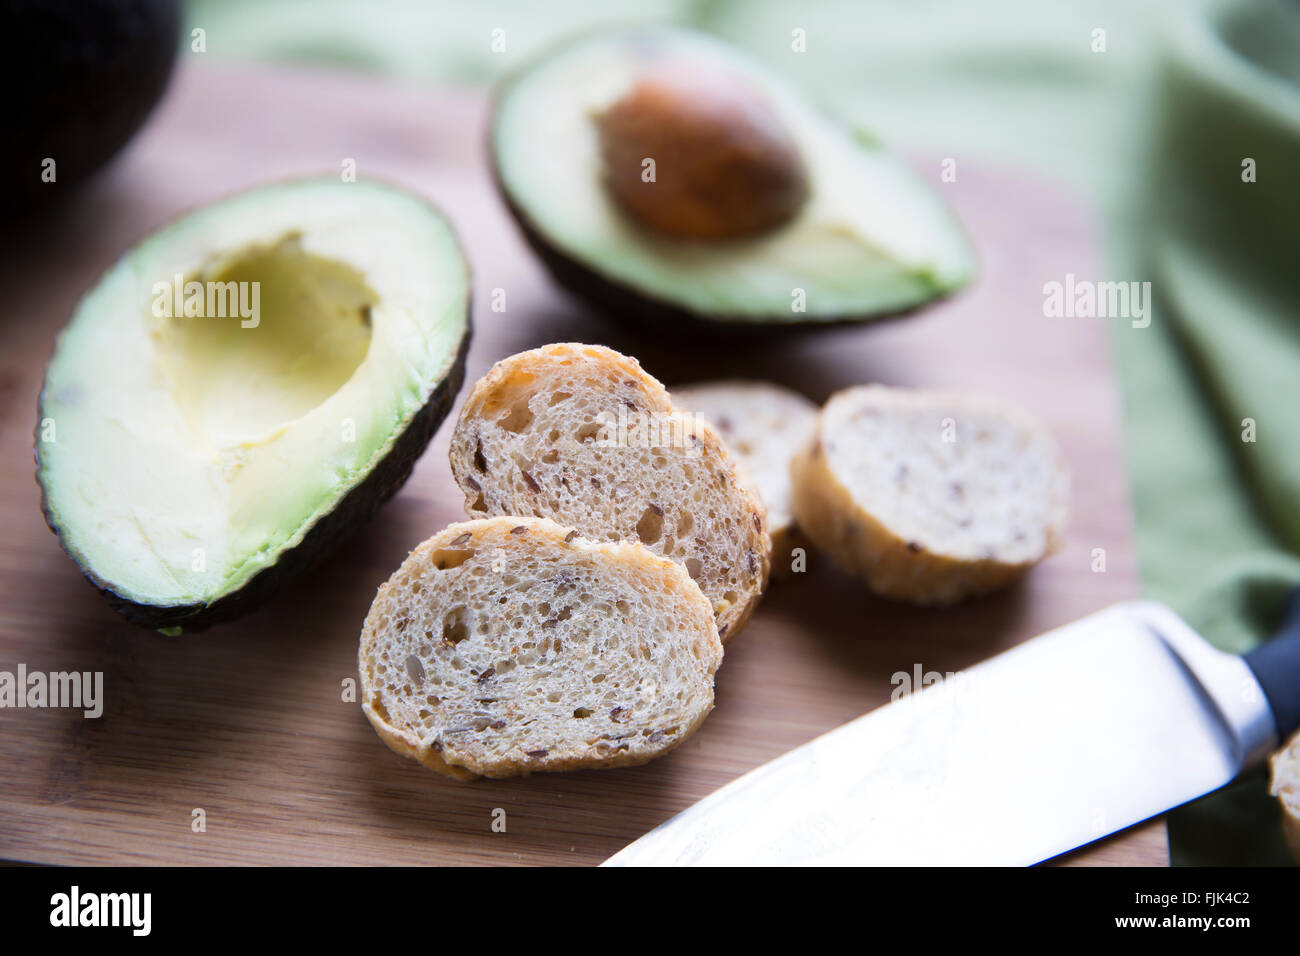 Fresh avocado cut in half and small slices of bread for making avocado toast. - Stock Image